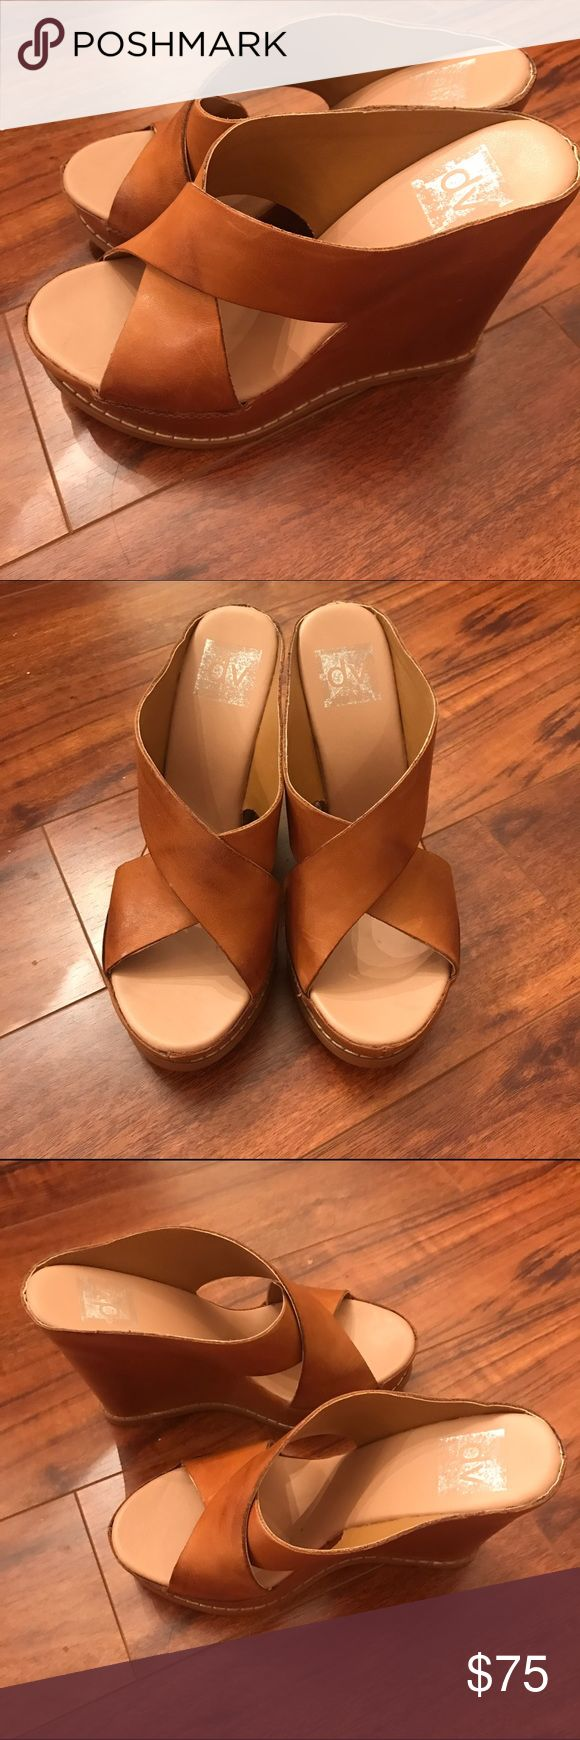 Dolce Vita Leather Wedge Sandals Dolce Vita Wedge Sandals. Original box included.  In great condition. Dolce Vita Shoes Wedges